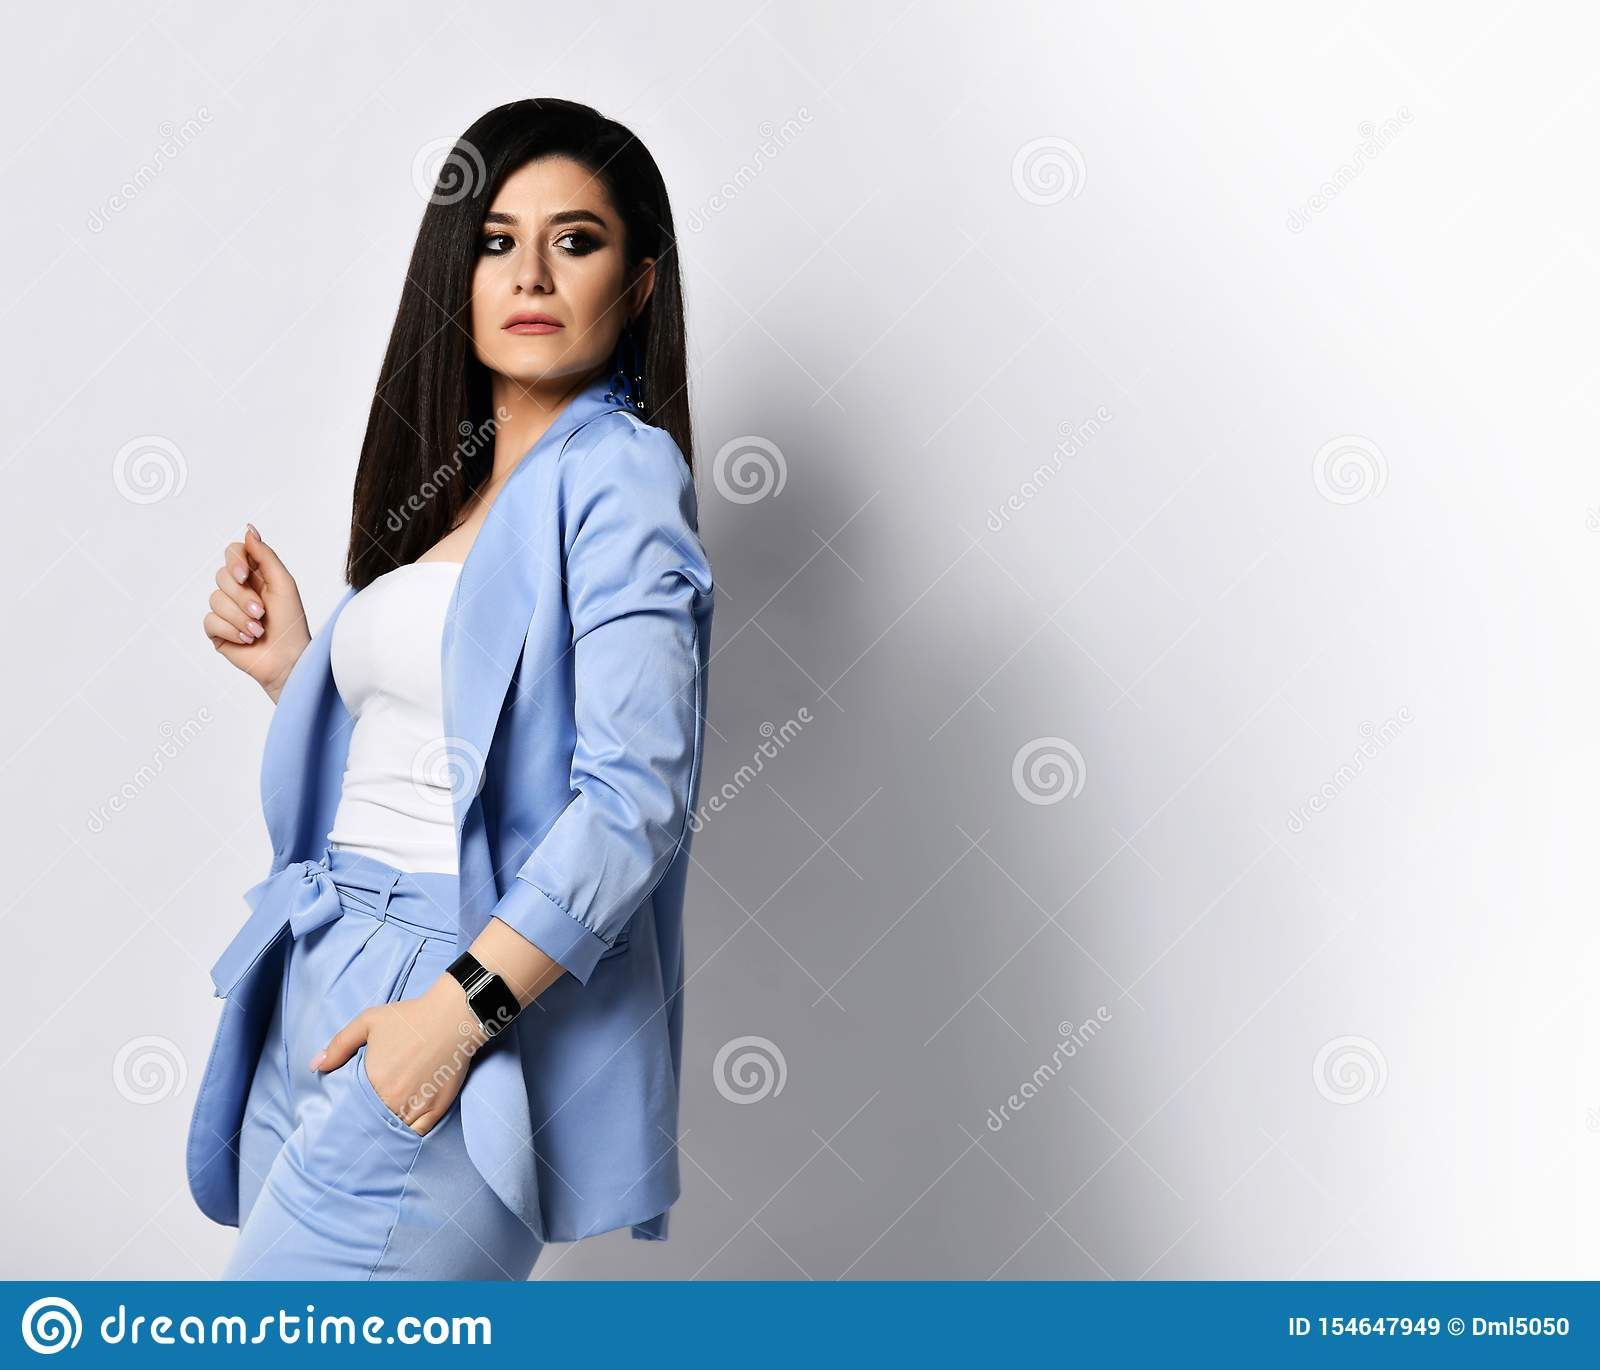 Powerful business woman in blue official suit turned back and looked over her shoulder at free text space on white